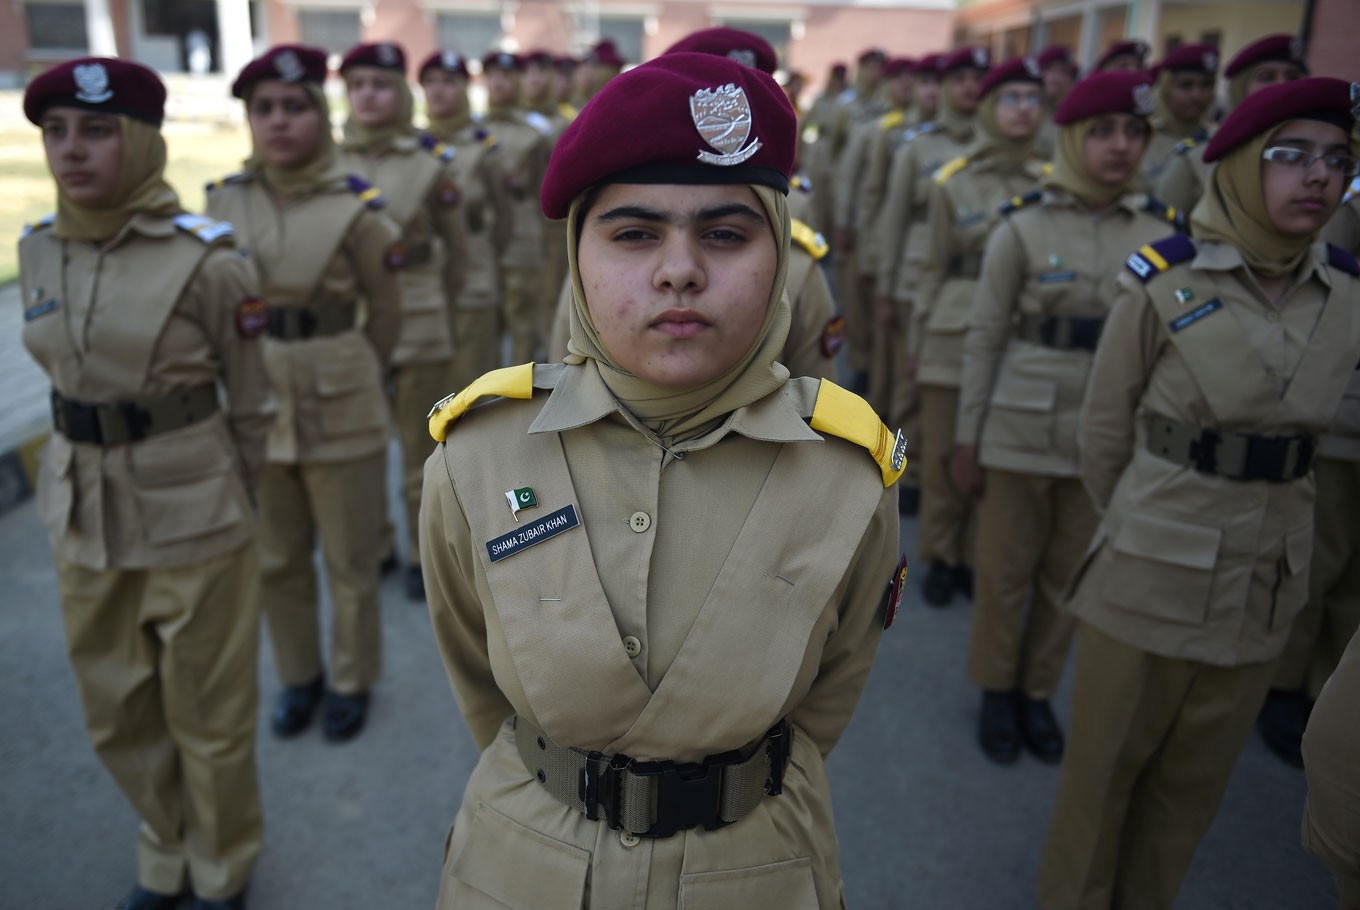 Pakistan's girl cadets dream of taking power